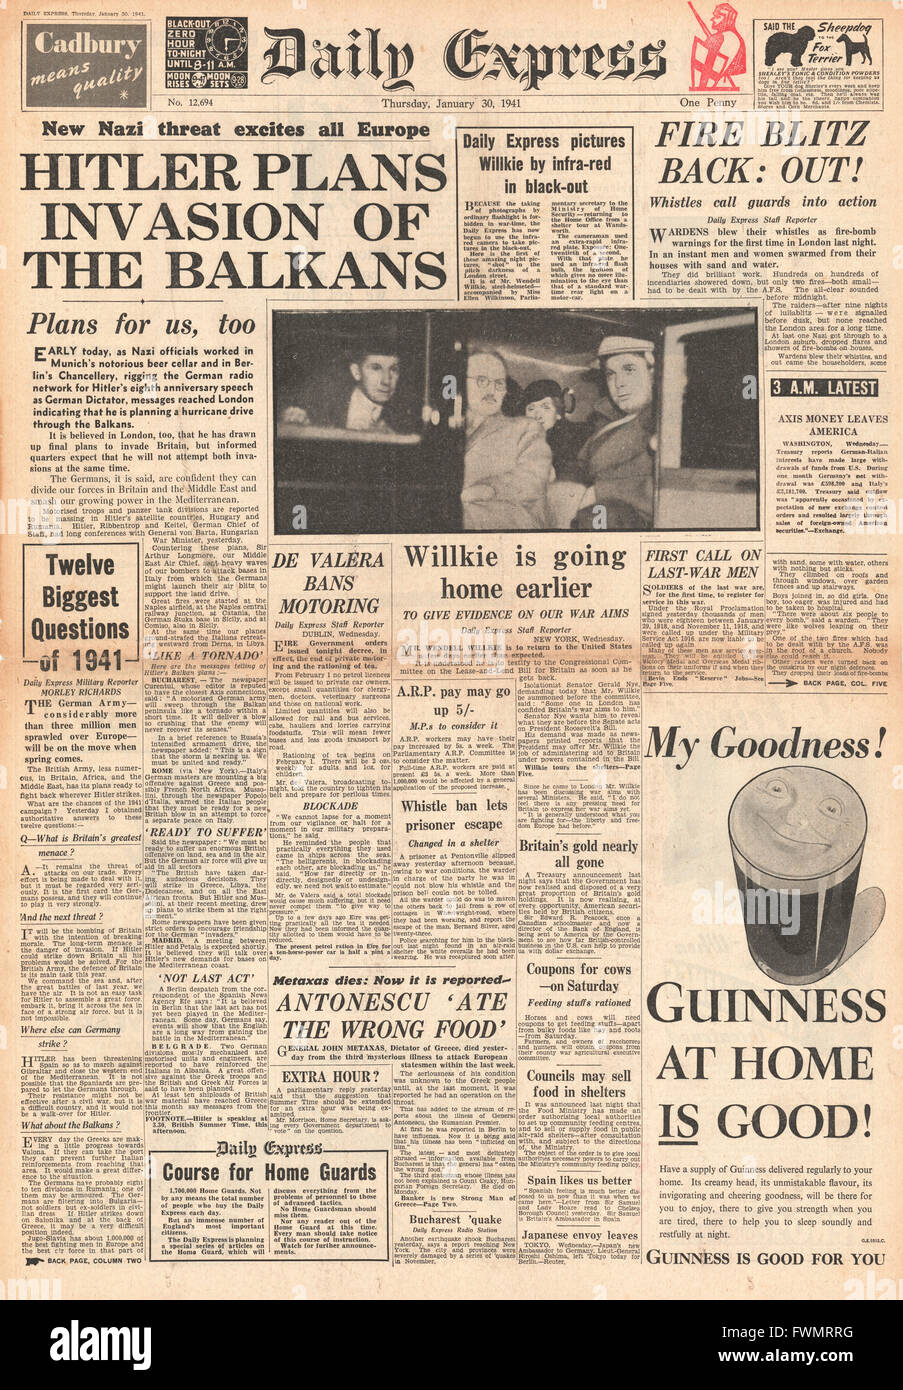 1941 front page Daily Express Hitler plans invasion of the Balkans and ARP's blow whistles as fire bomb warnings - Stock Image